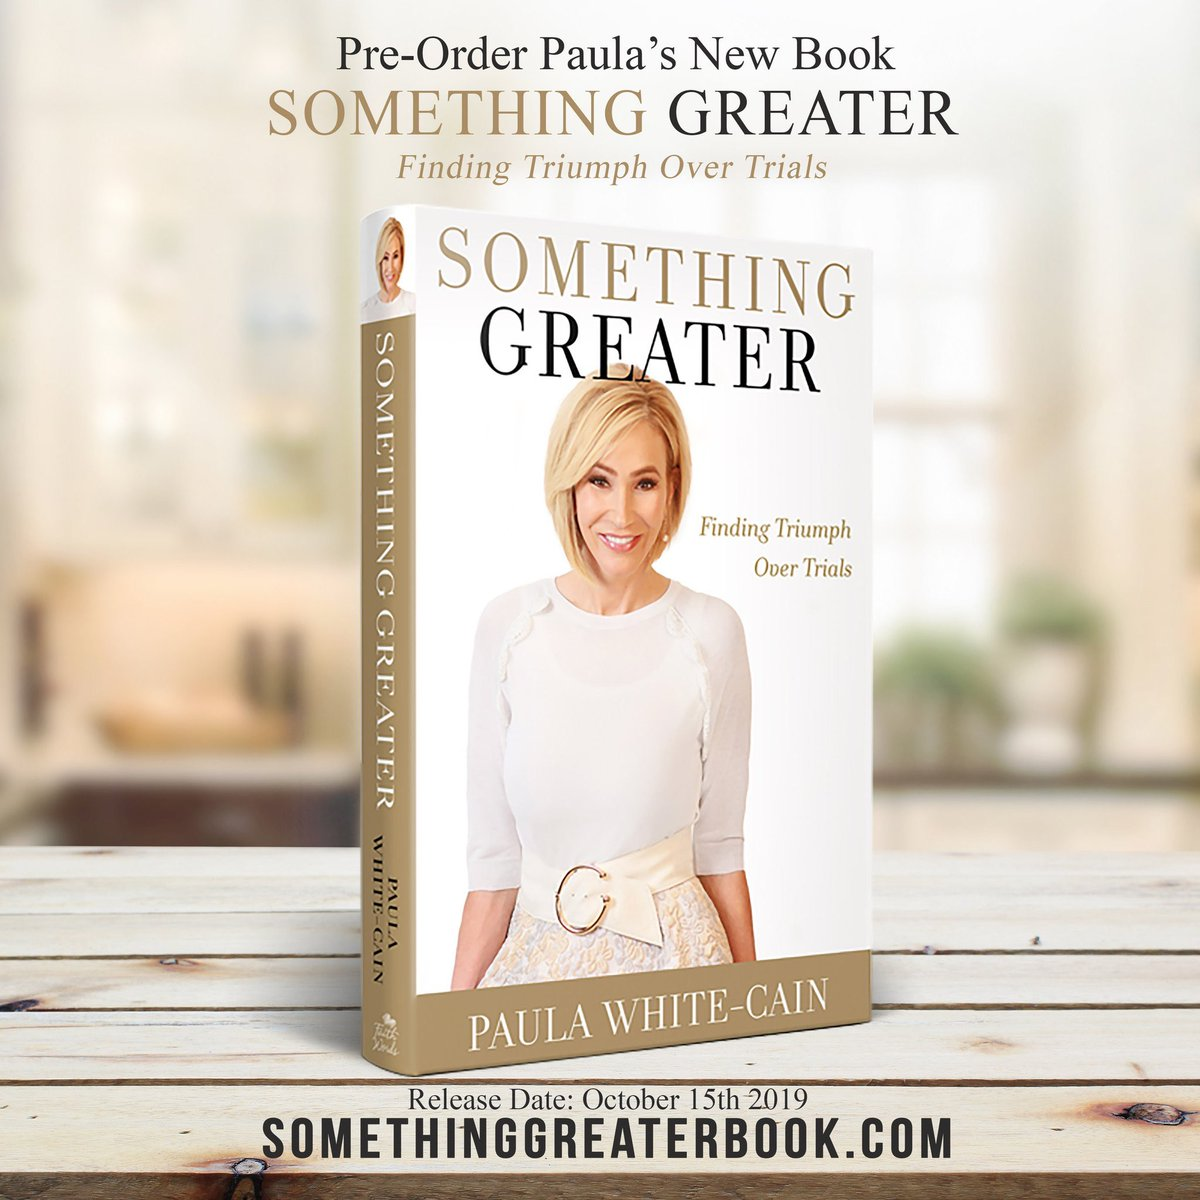 @Paula_White has led an interesting life and now serves as a trusted advisor to @realDonaldTrump. She has a new book coming out tomorrow that you might want to check out! twitter.com/paula_white/st…